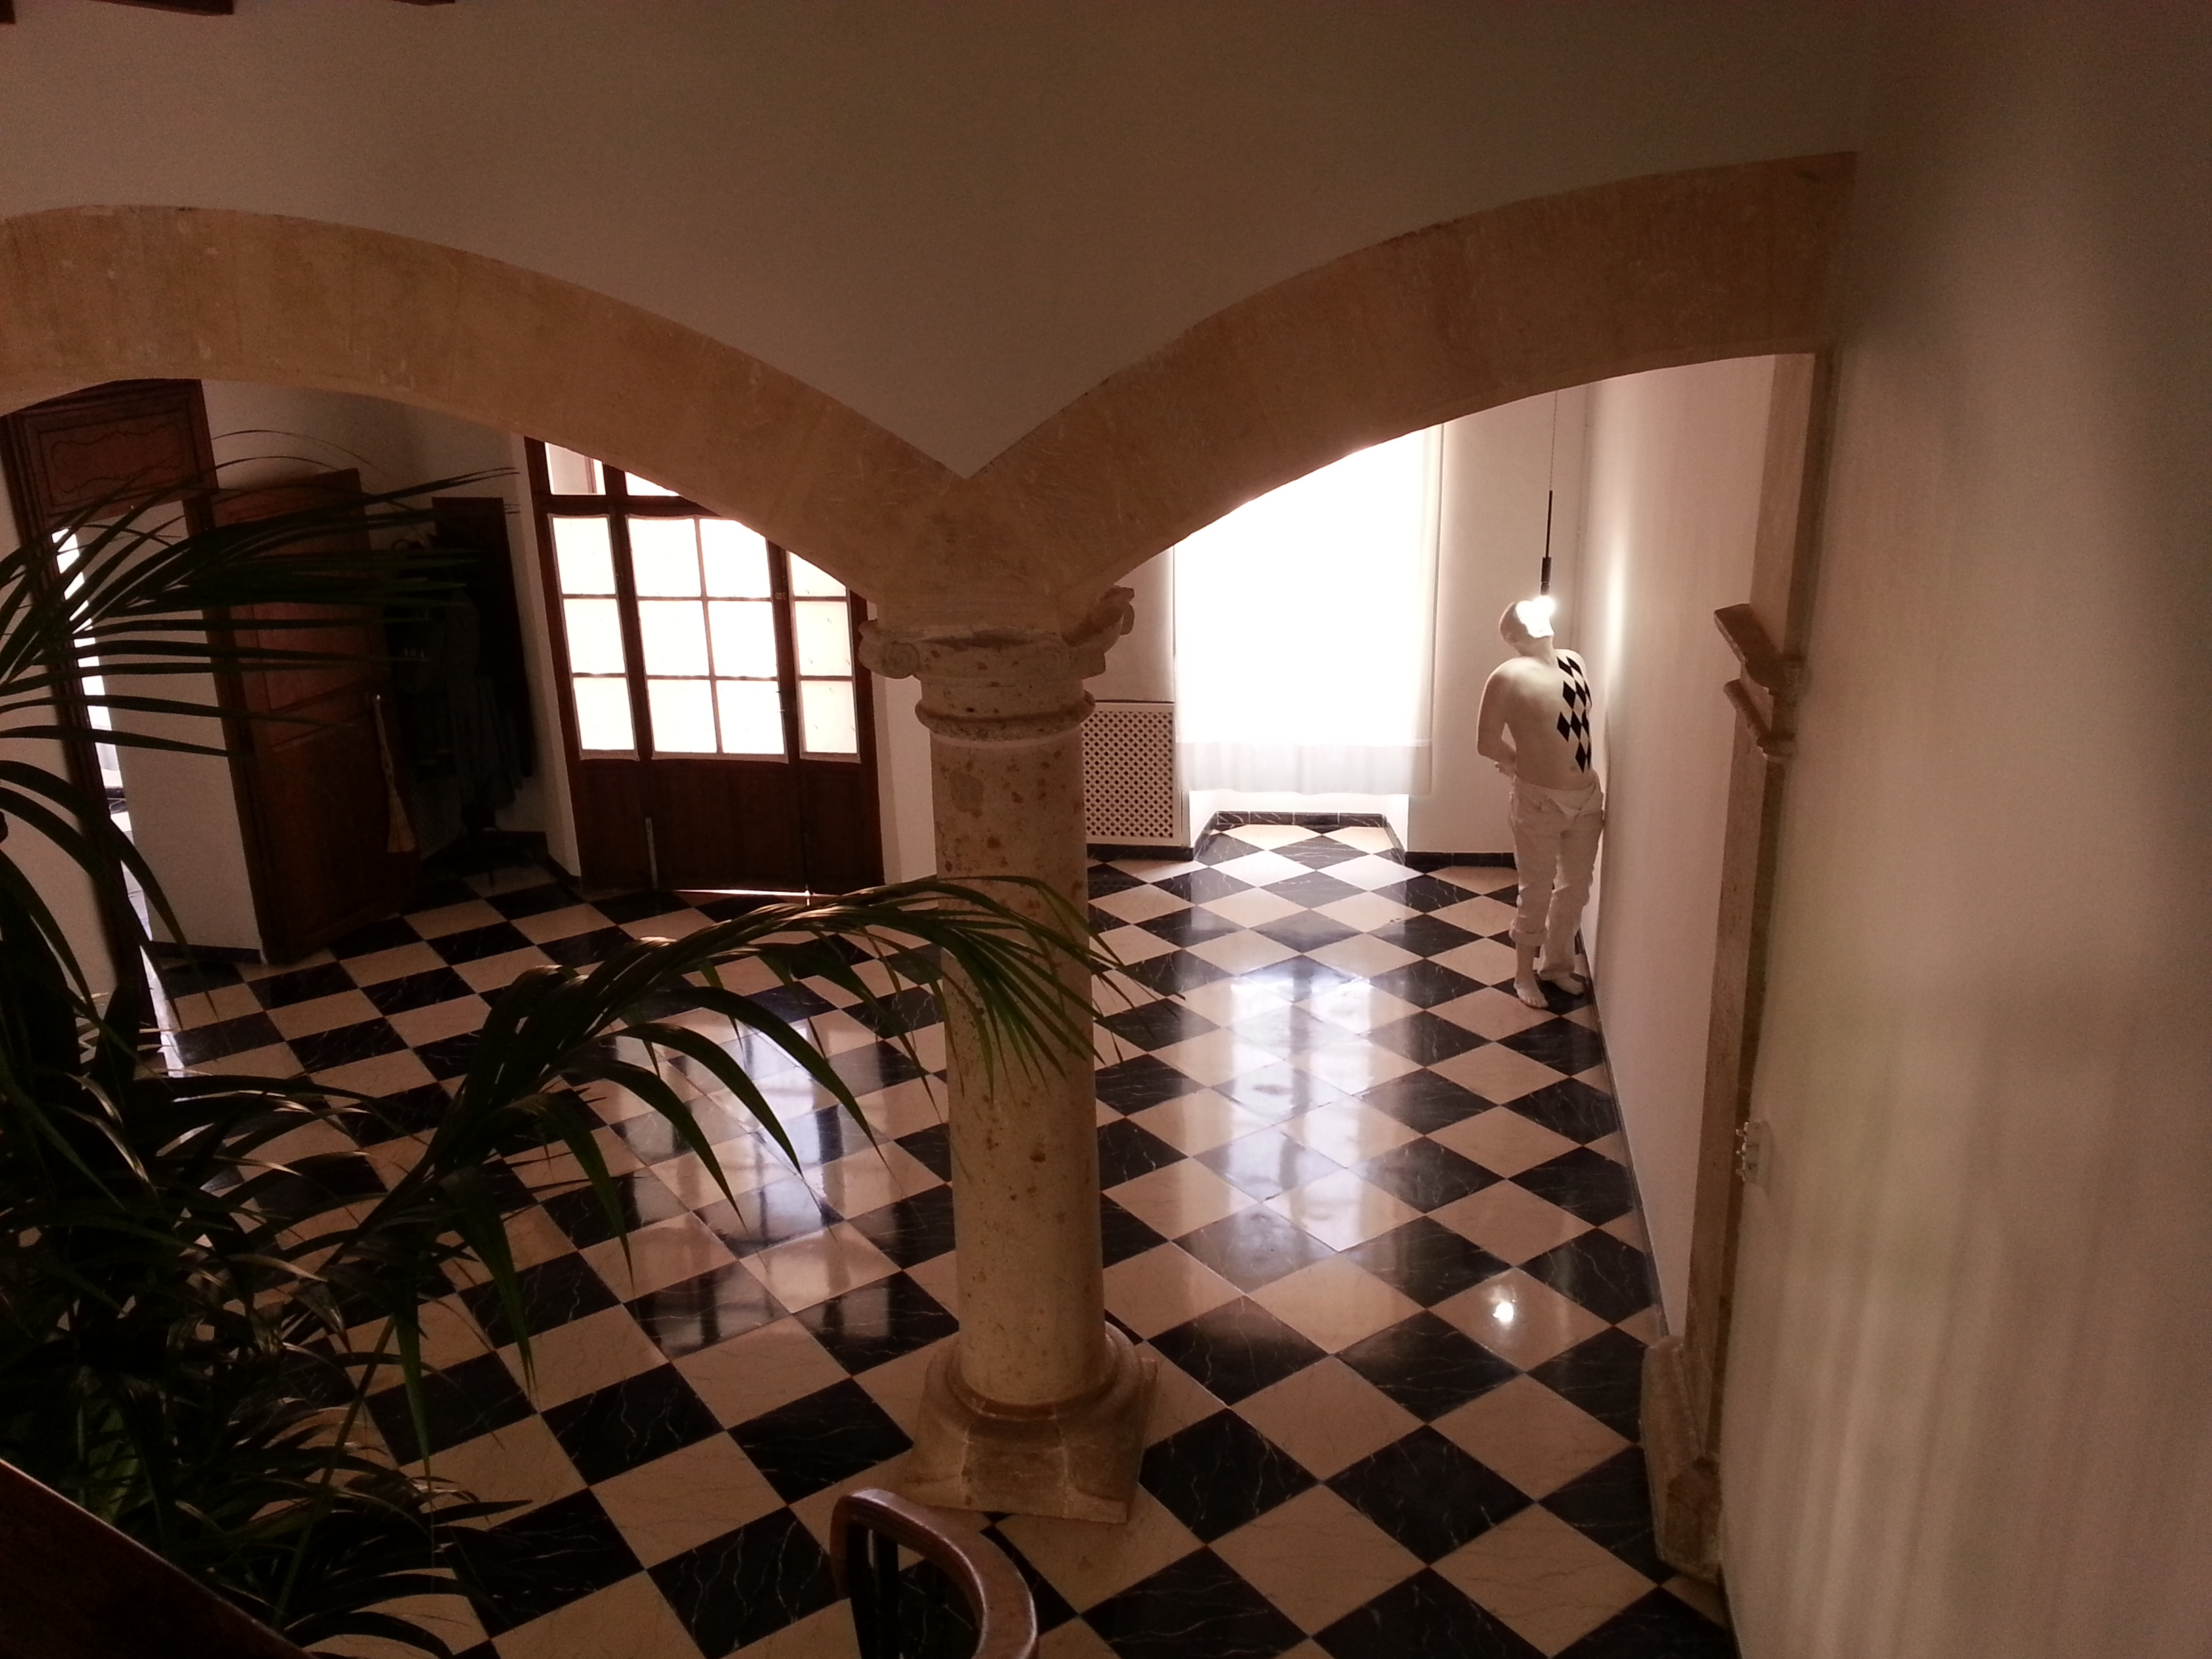 The foyer of Roig's home, with one of the artist's sculptures displayed on the right. Photo: Vesela Sretenovic